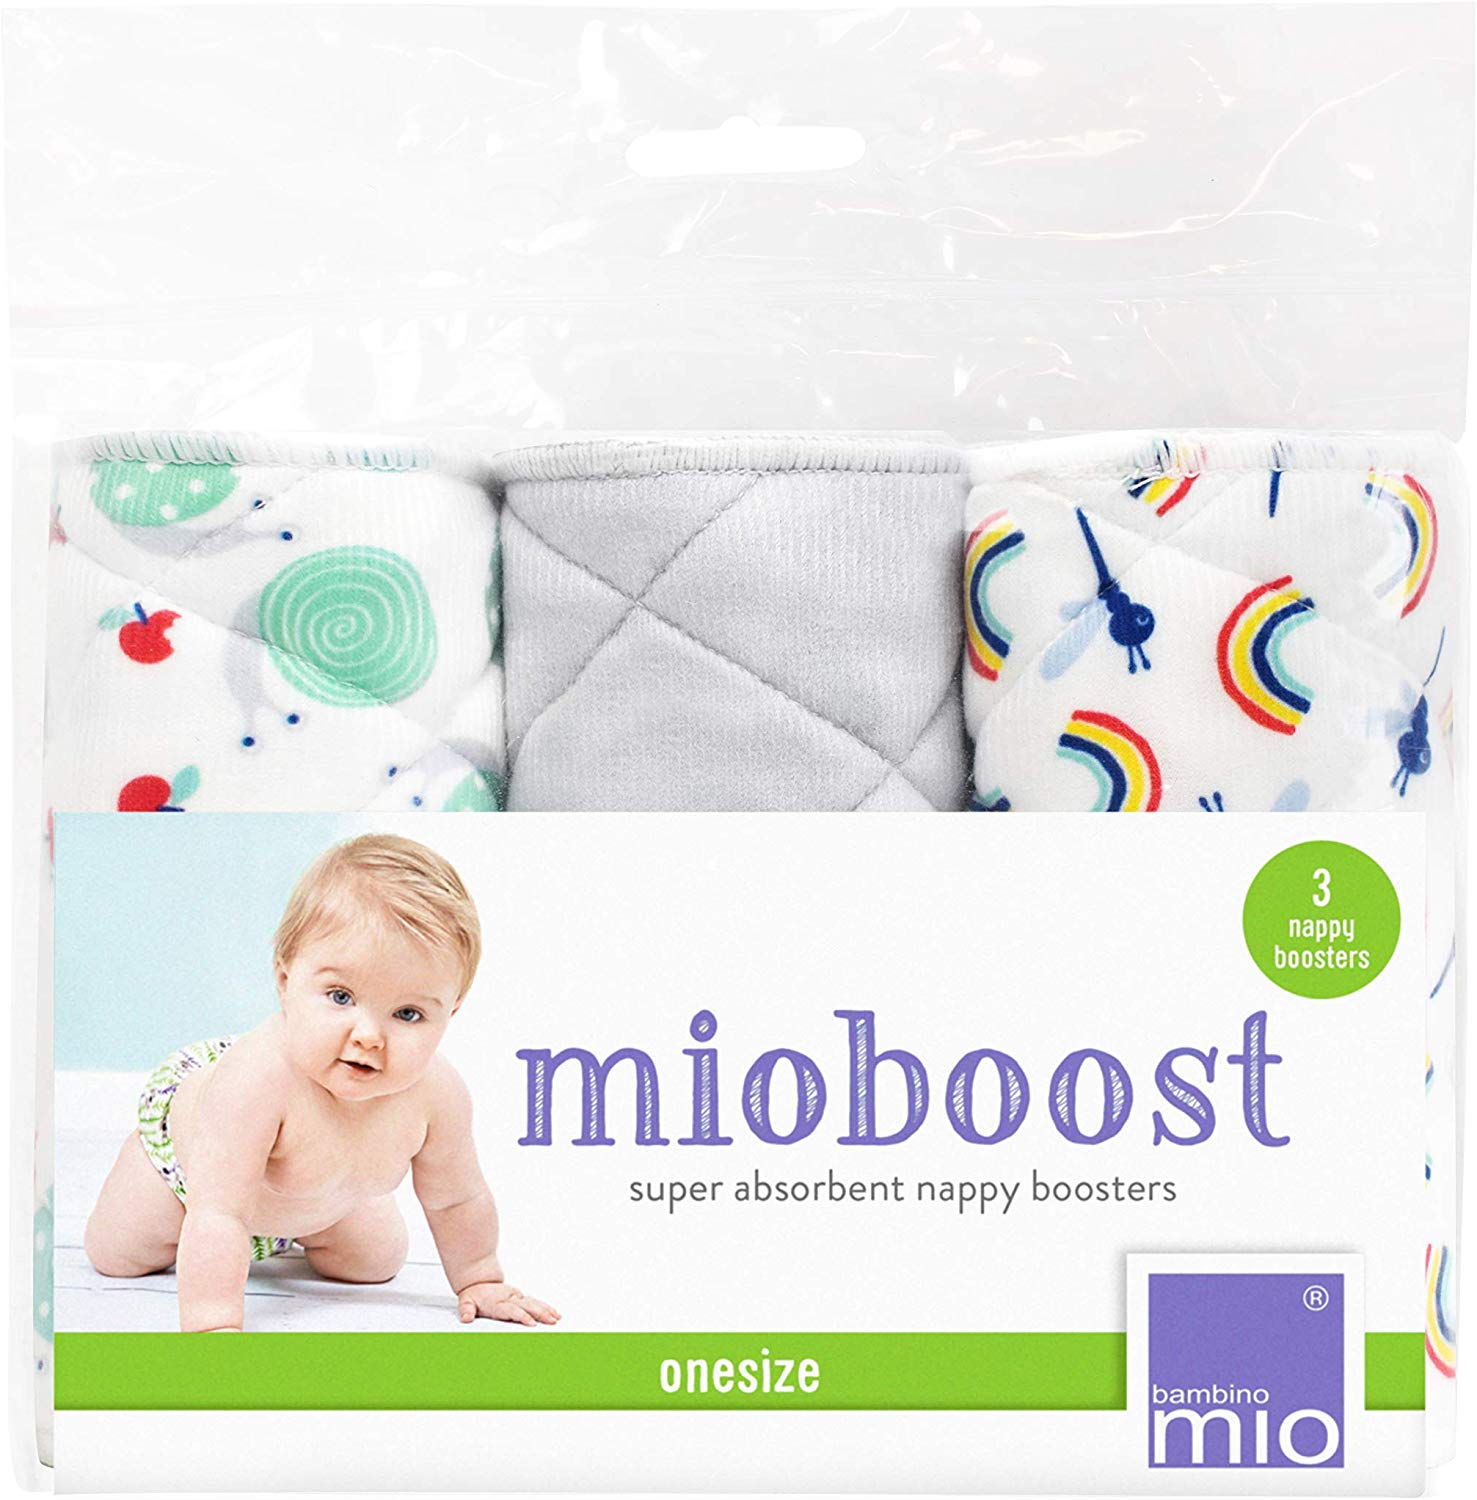 Mioboost (boosters pour couches lavables) BAMBINO MIO